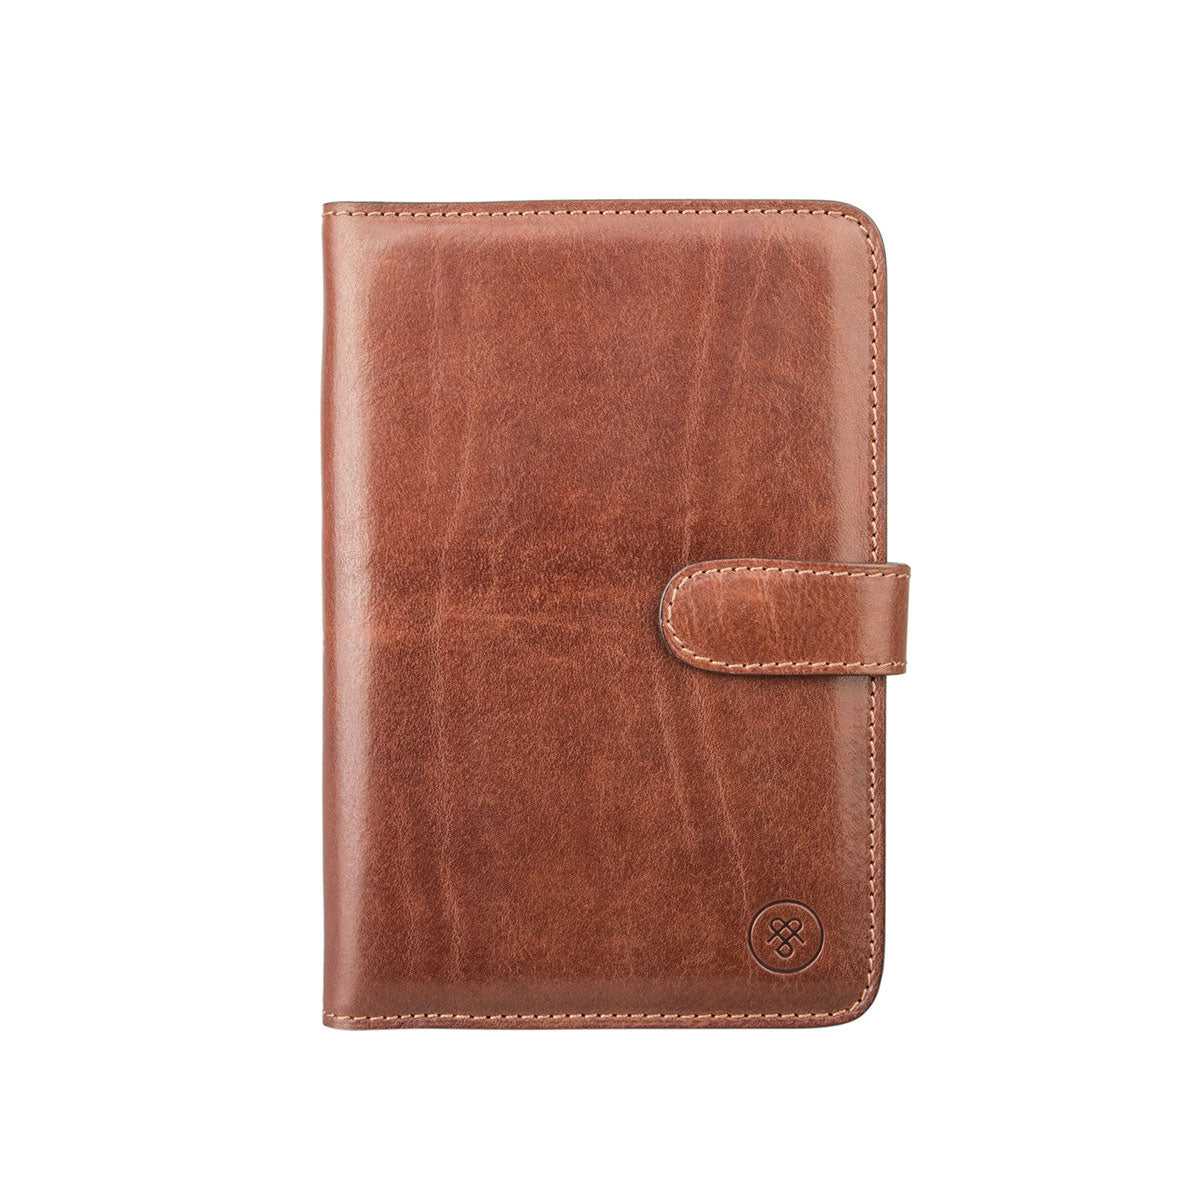 Image 2 of the 'Vieste' Chestnut Veg-Tanned Leather Travel Wallet